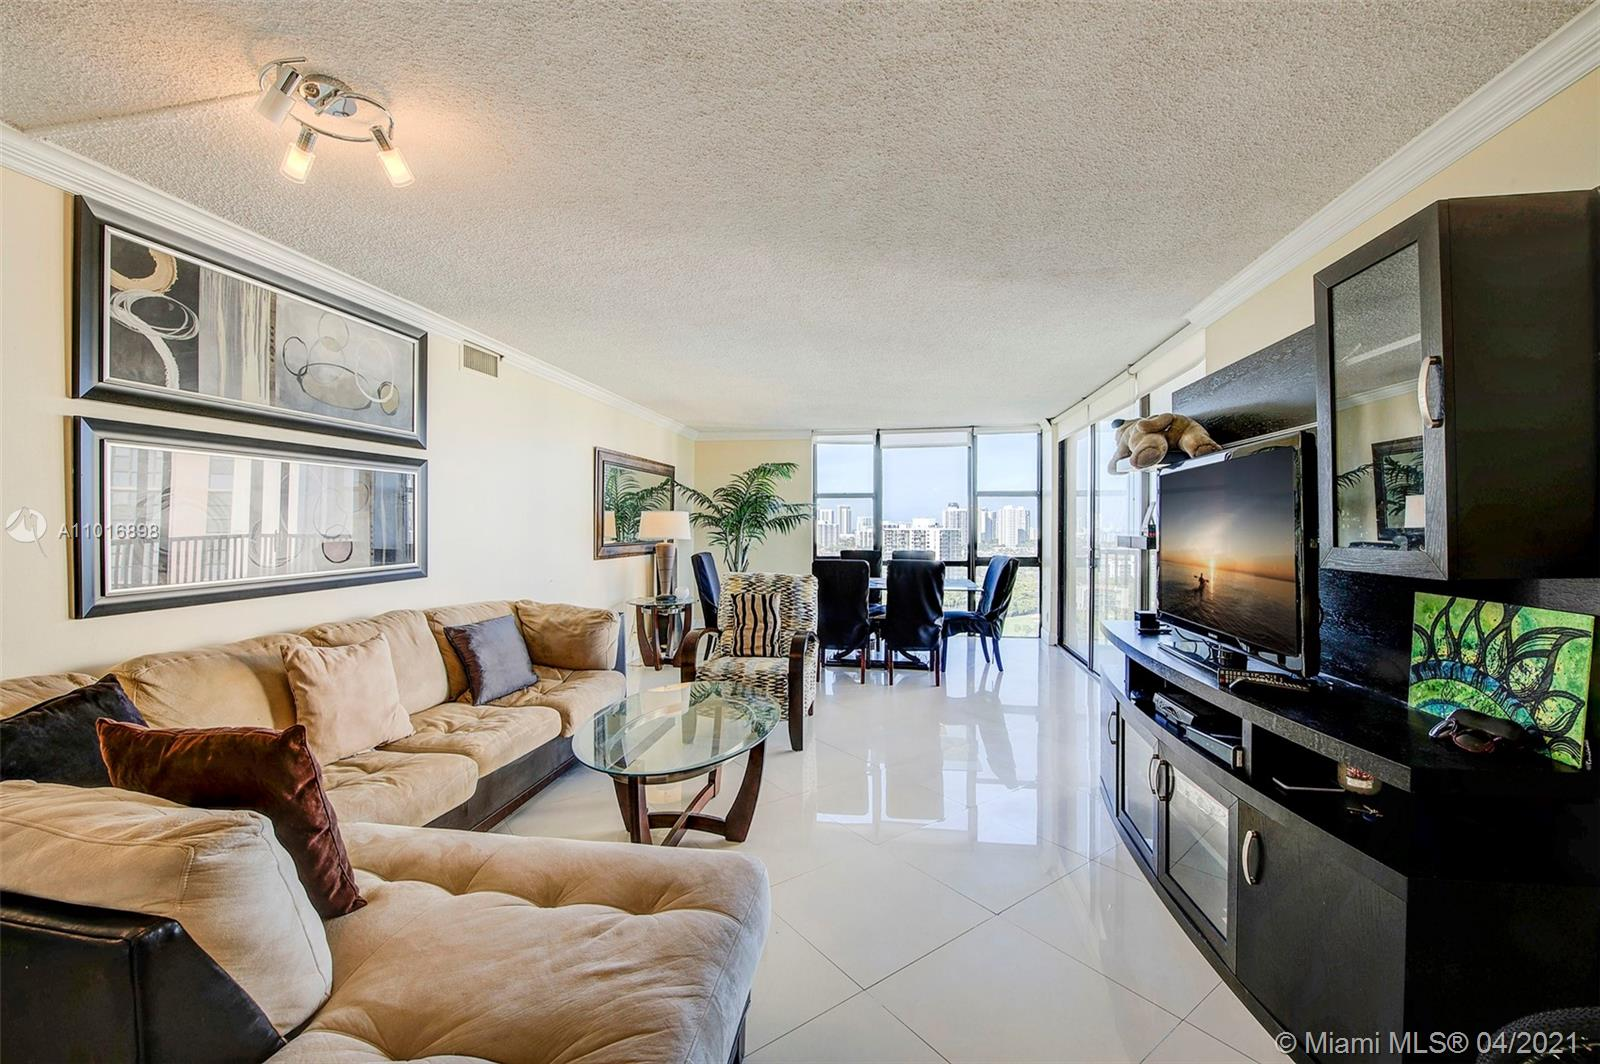 This large two bedroom, two bath condo on the 20th floor with over 1,300 sf of living space is completely furnished and offers beautiful views from the top, the coastline to the east and the golf course. The Coronado Buildings are located in Aventura, close to Turnberry Golf Course and Aventura Mall, and many restaurants and shops.  The building has recently renovated the floor hallways and it looks amazing.  A new assessment begun February 2021 (only $140.00 month) which will continue to beautify this community and bring the property values only upward.  Bike storage, doggy park, large pool, sauna, gym, library, etc. The monthly maintenance includes water, cable and internet, gated entrance and security.